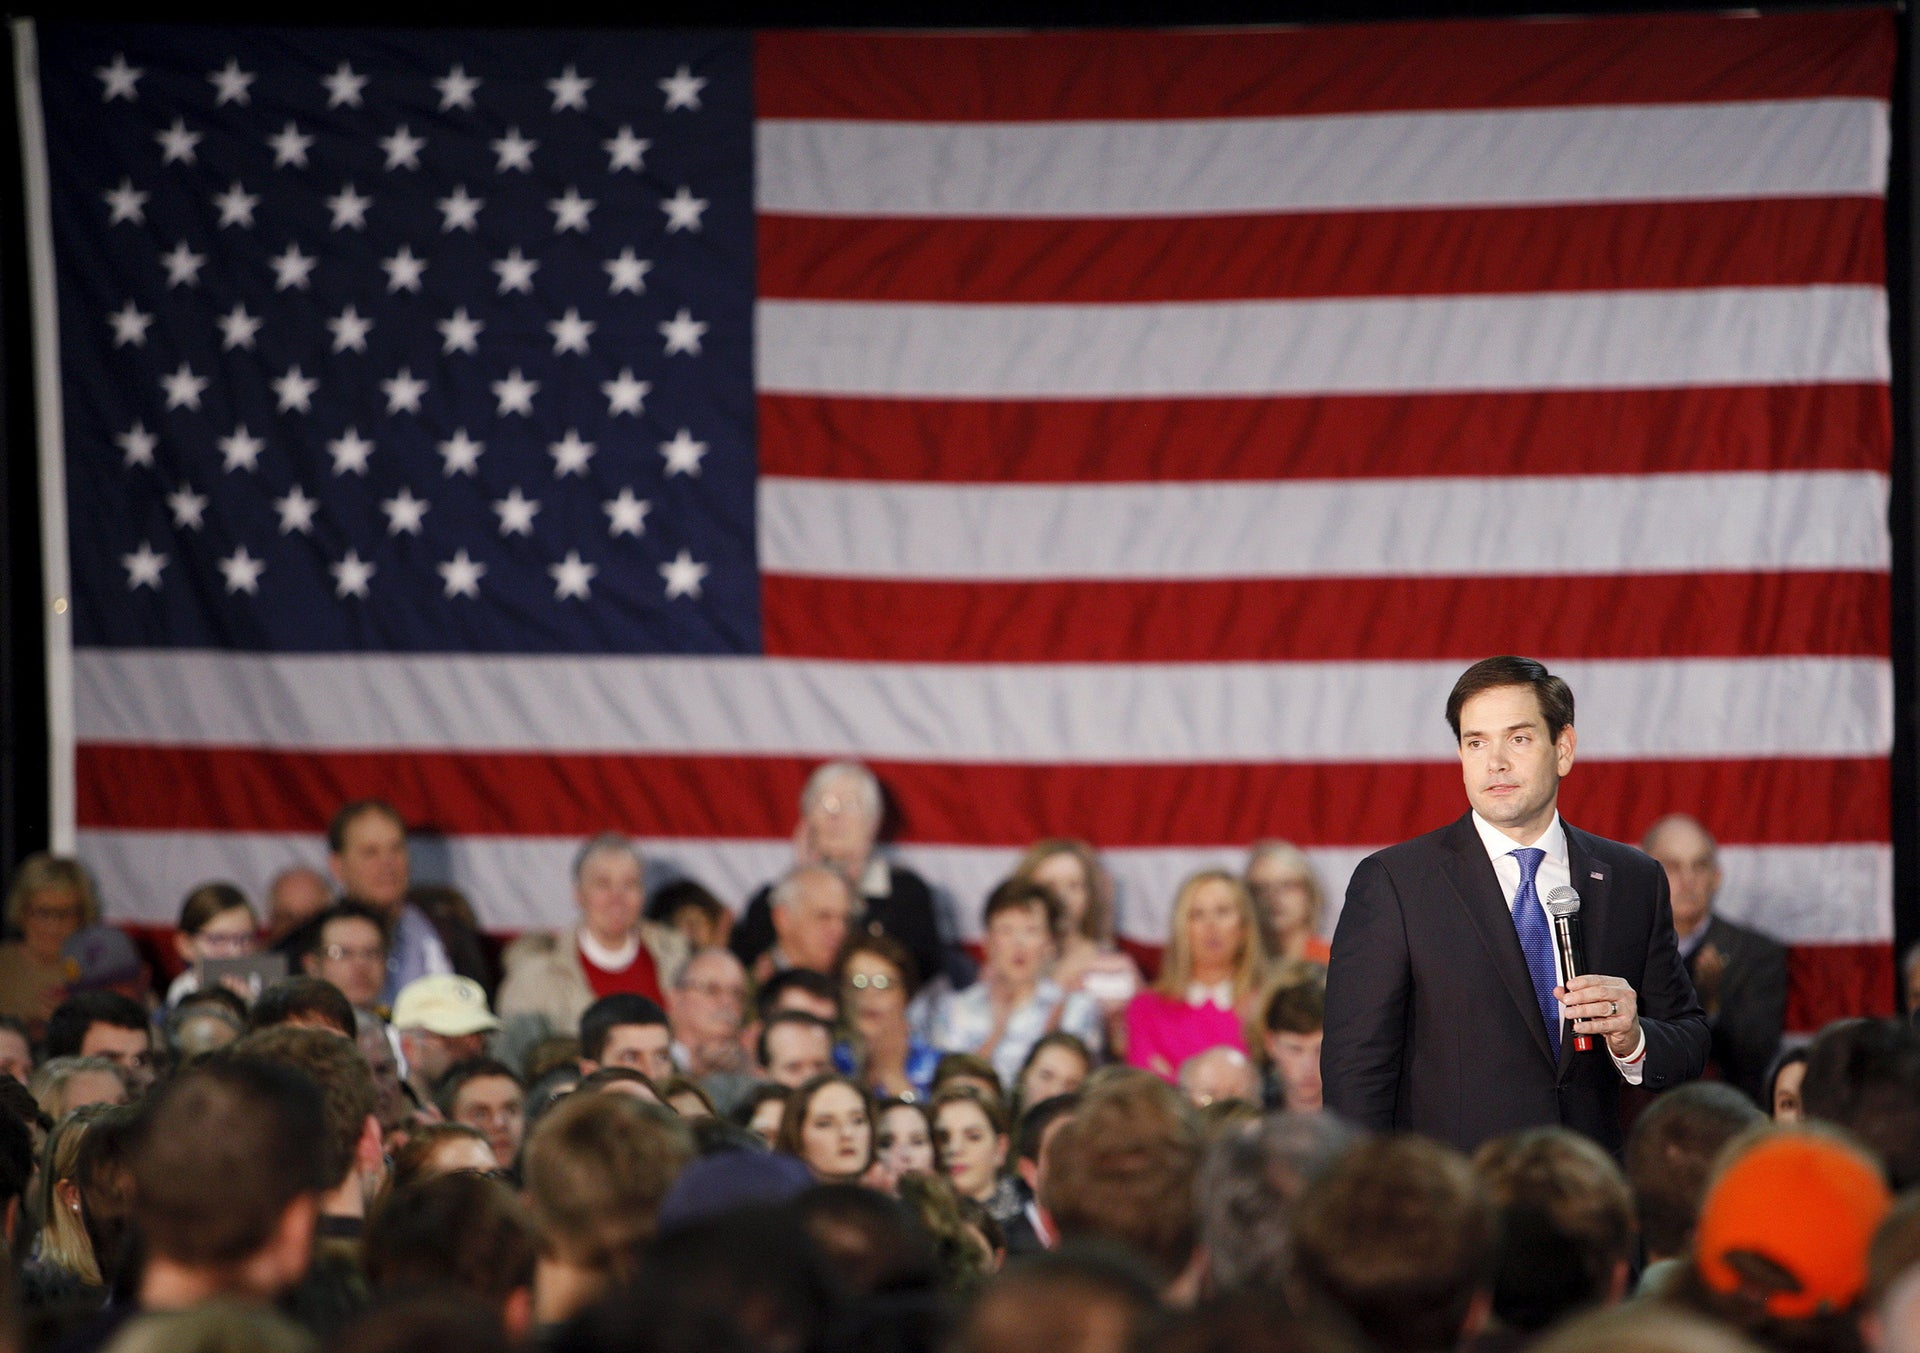 Republican presidential candidate Marco Rubio speaks at a campaign rally in Raleigh, North Carolina, January 9, 2016.